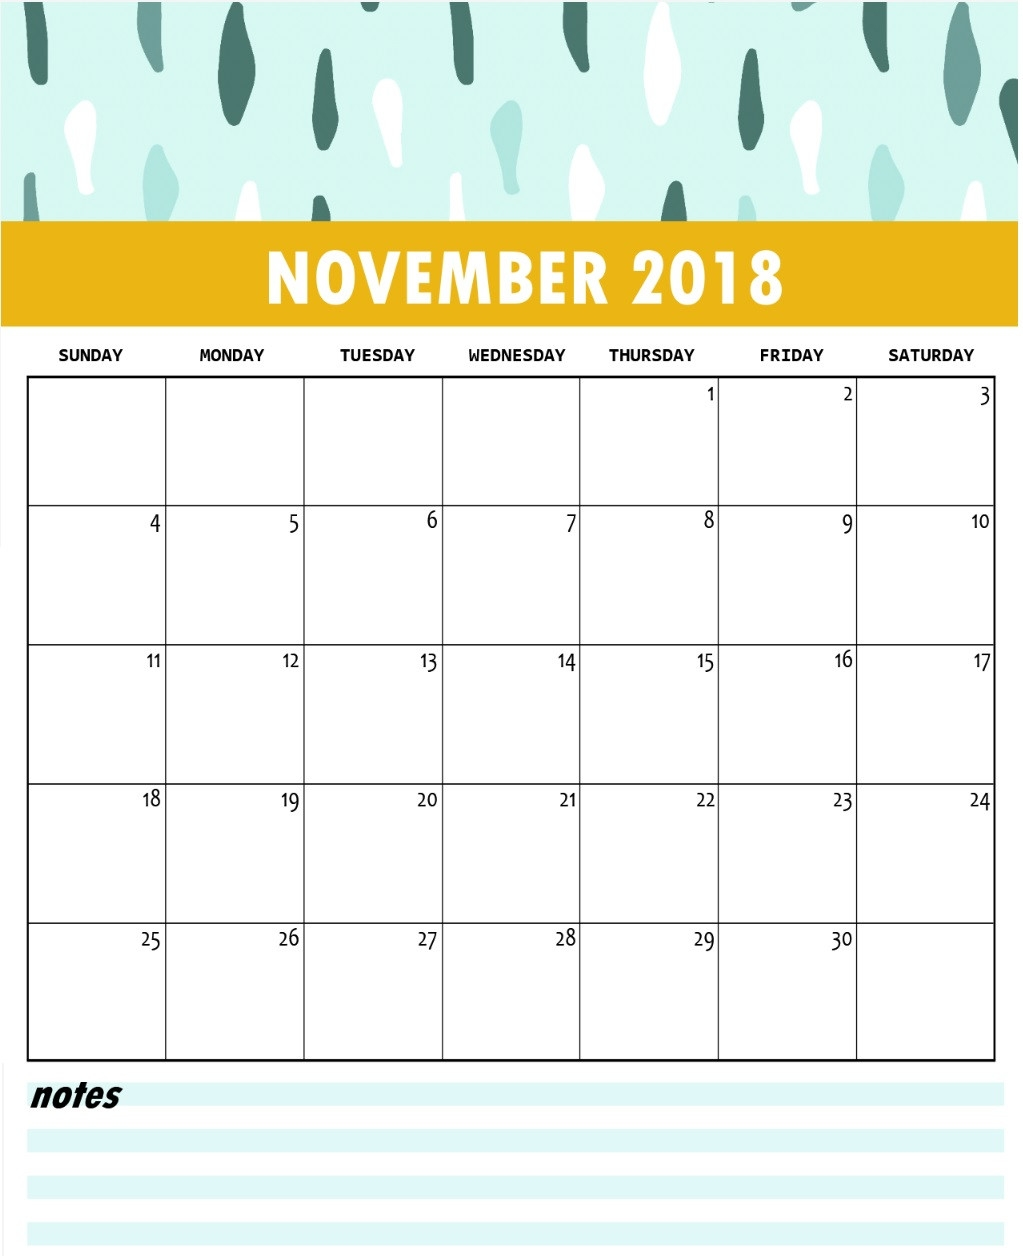 november 2018 editable calendar download free template free Editable November 2018 Calendar erdferdf